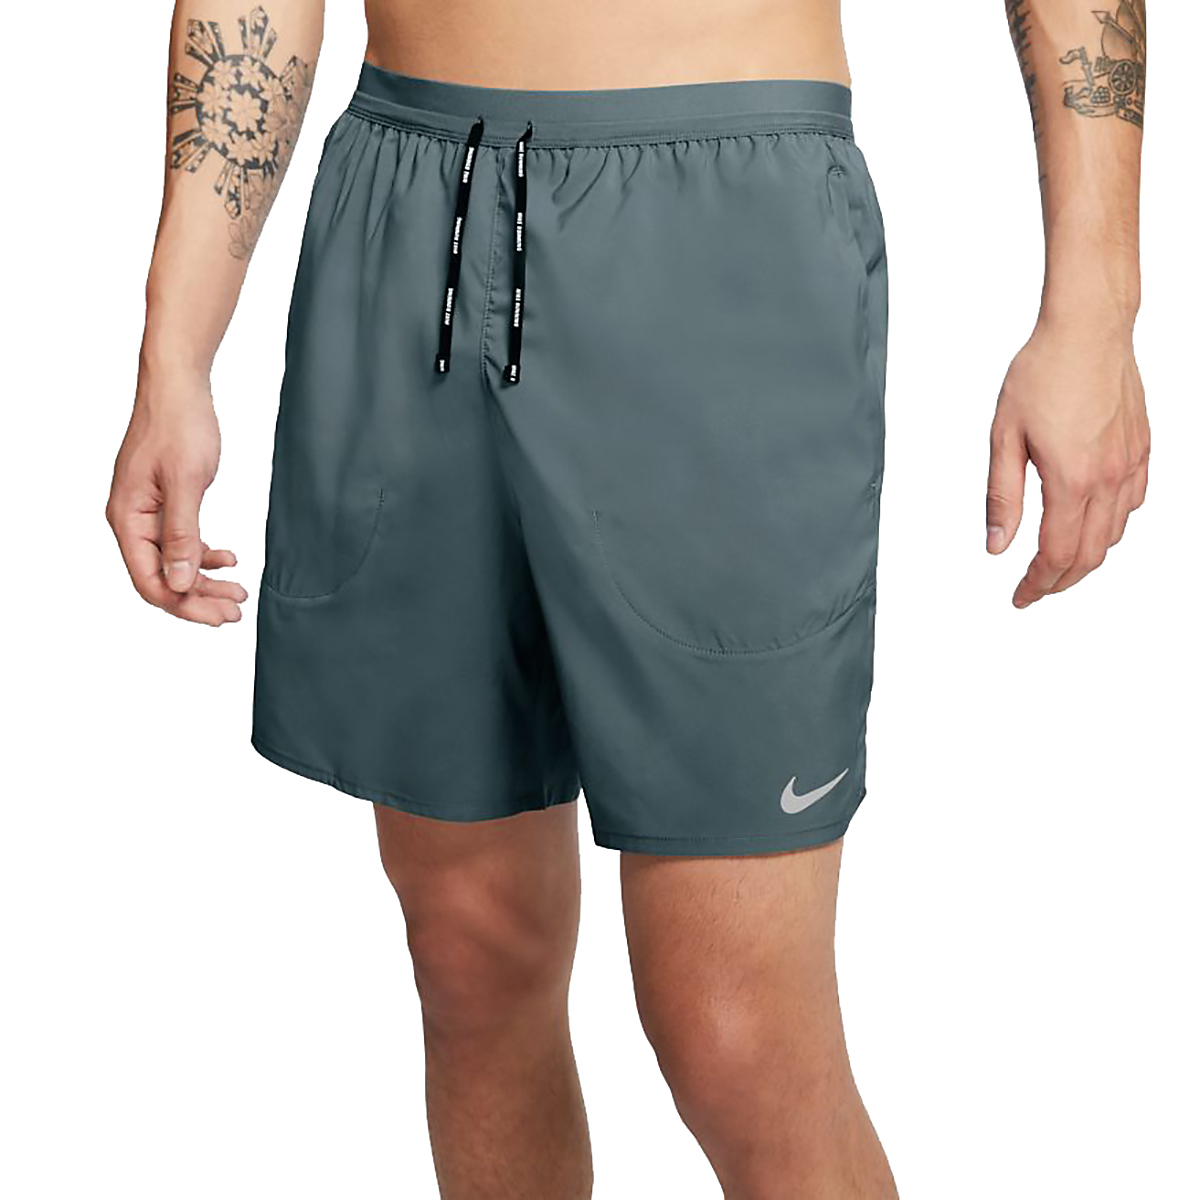 """Men's Nike Flex Stride 7"""" Brief Running Shorts - Color: Hasta/Reflective Silver - Size: XS, Hasta/Reflective Silver, large, image 3"""